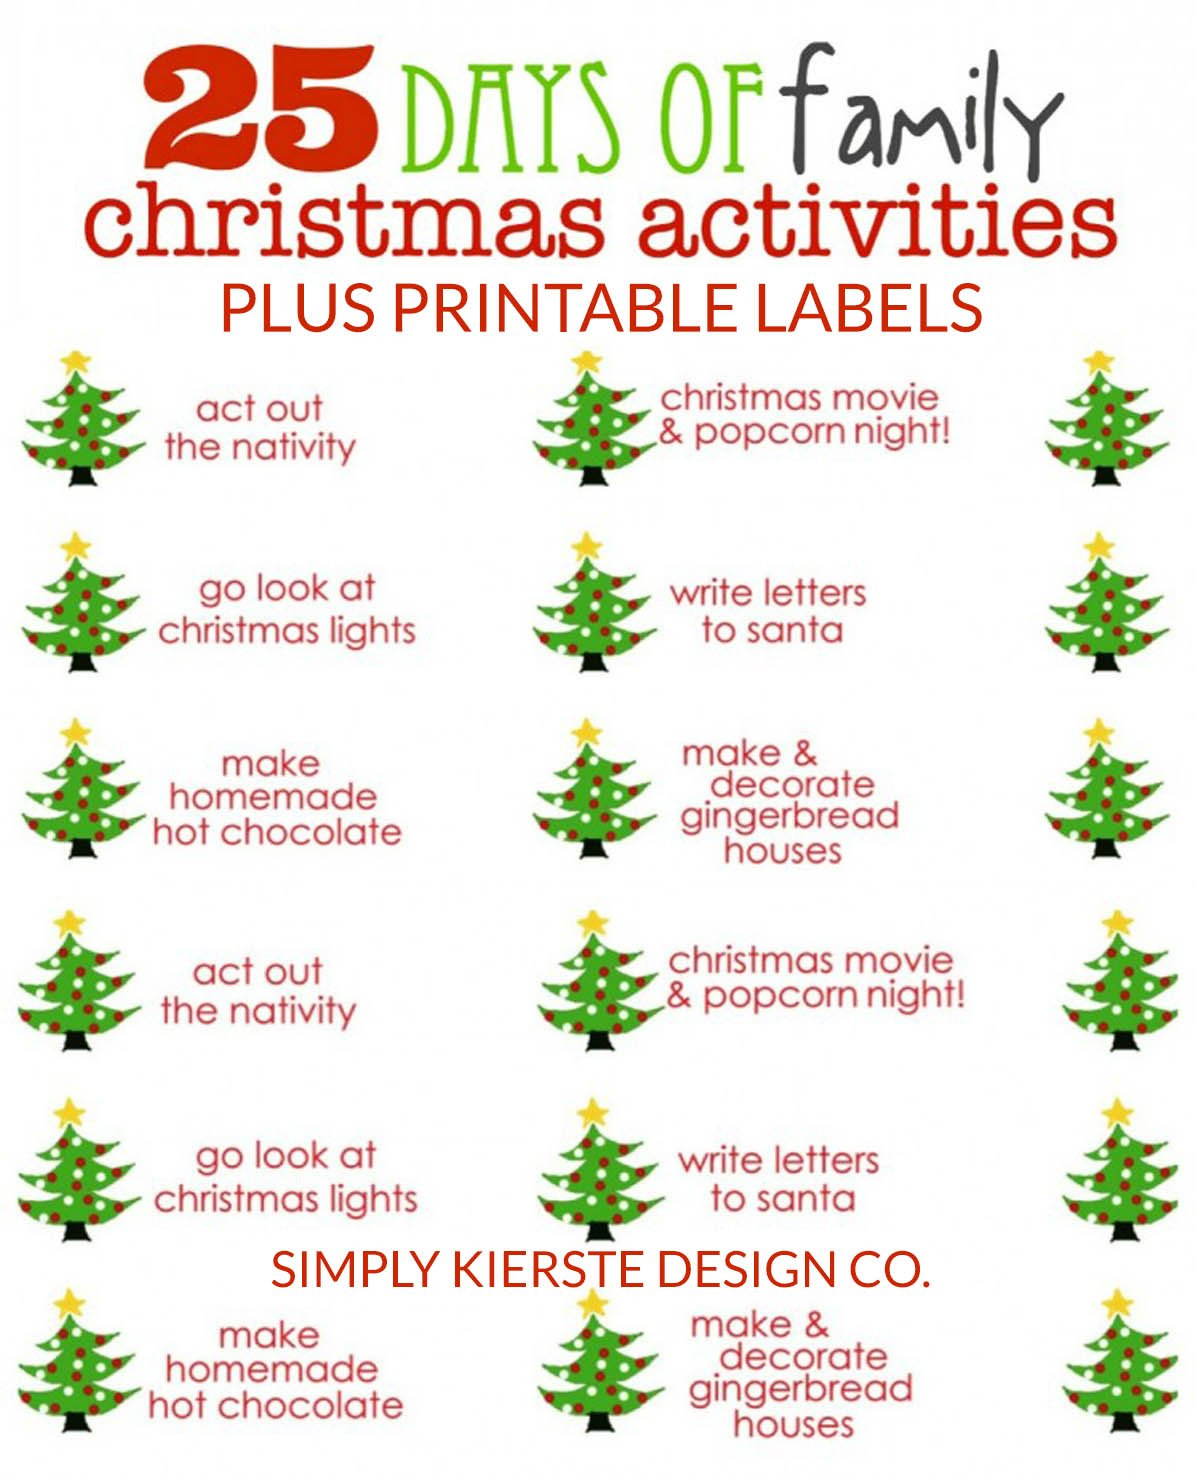 25 days of family christmas activities free printable labels simplykierstecom christmastraditionsforfamiilies